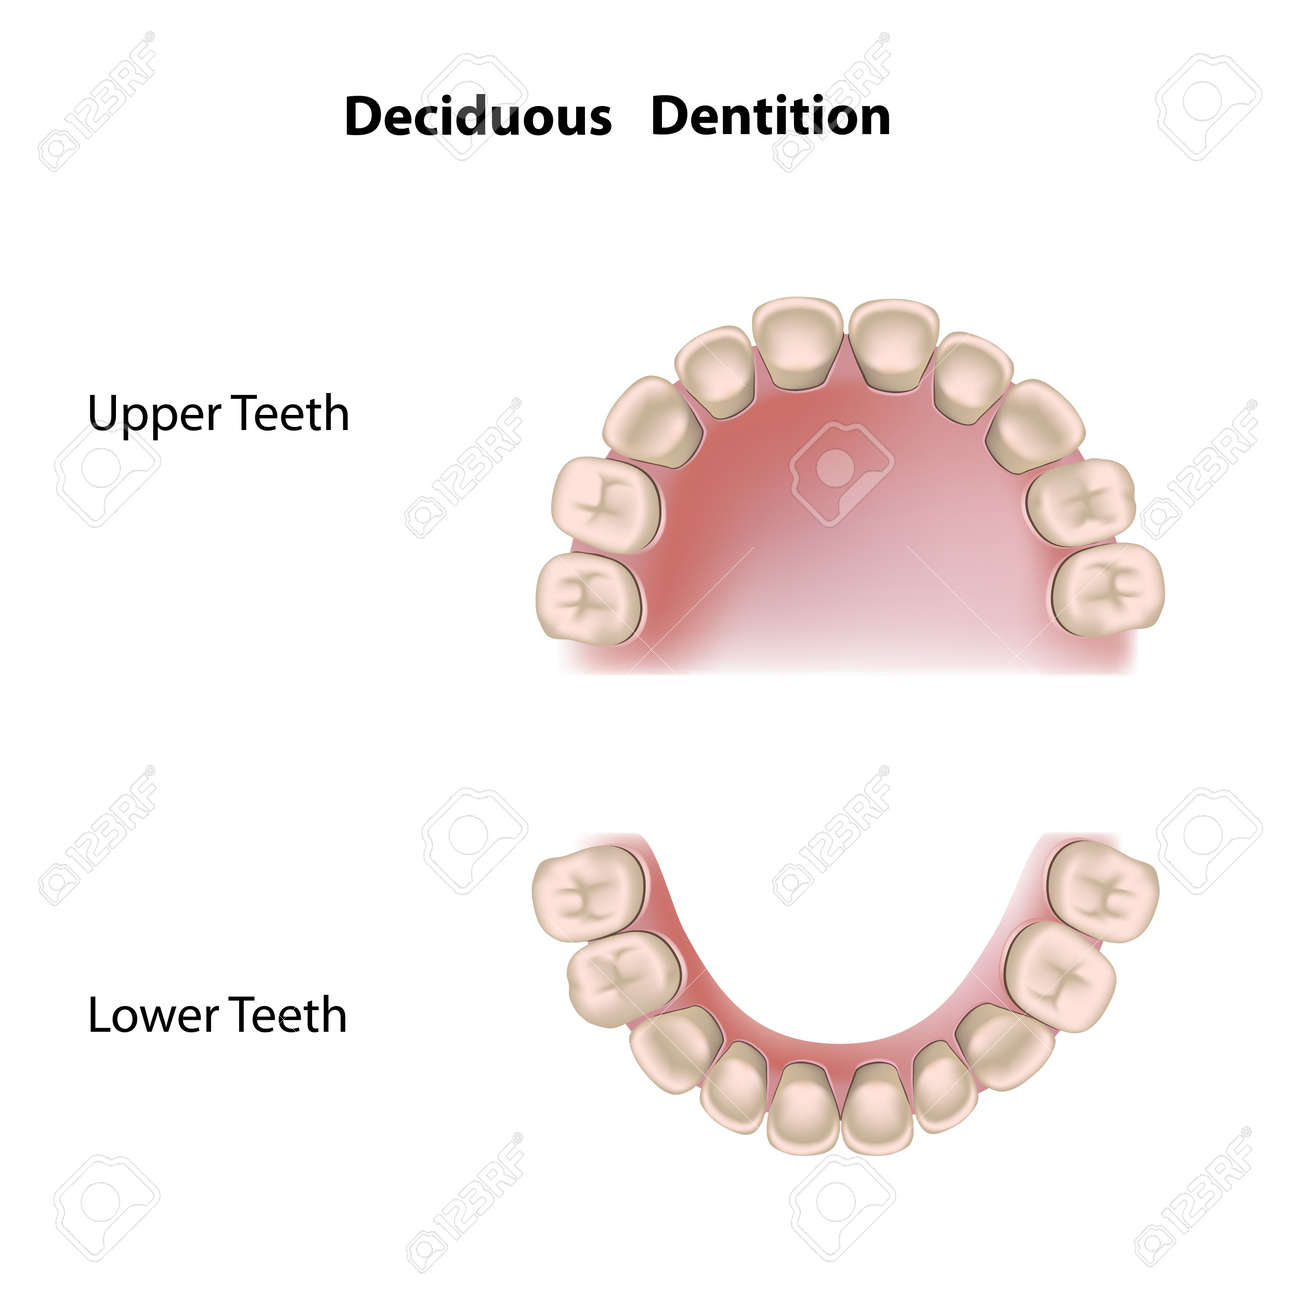 Deciduous Dentition (baby Teeth) Royalty Free Cliparts, Vectors ...